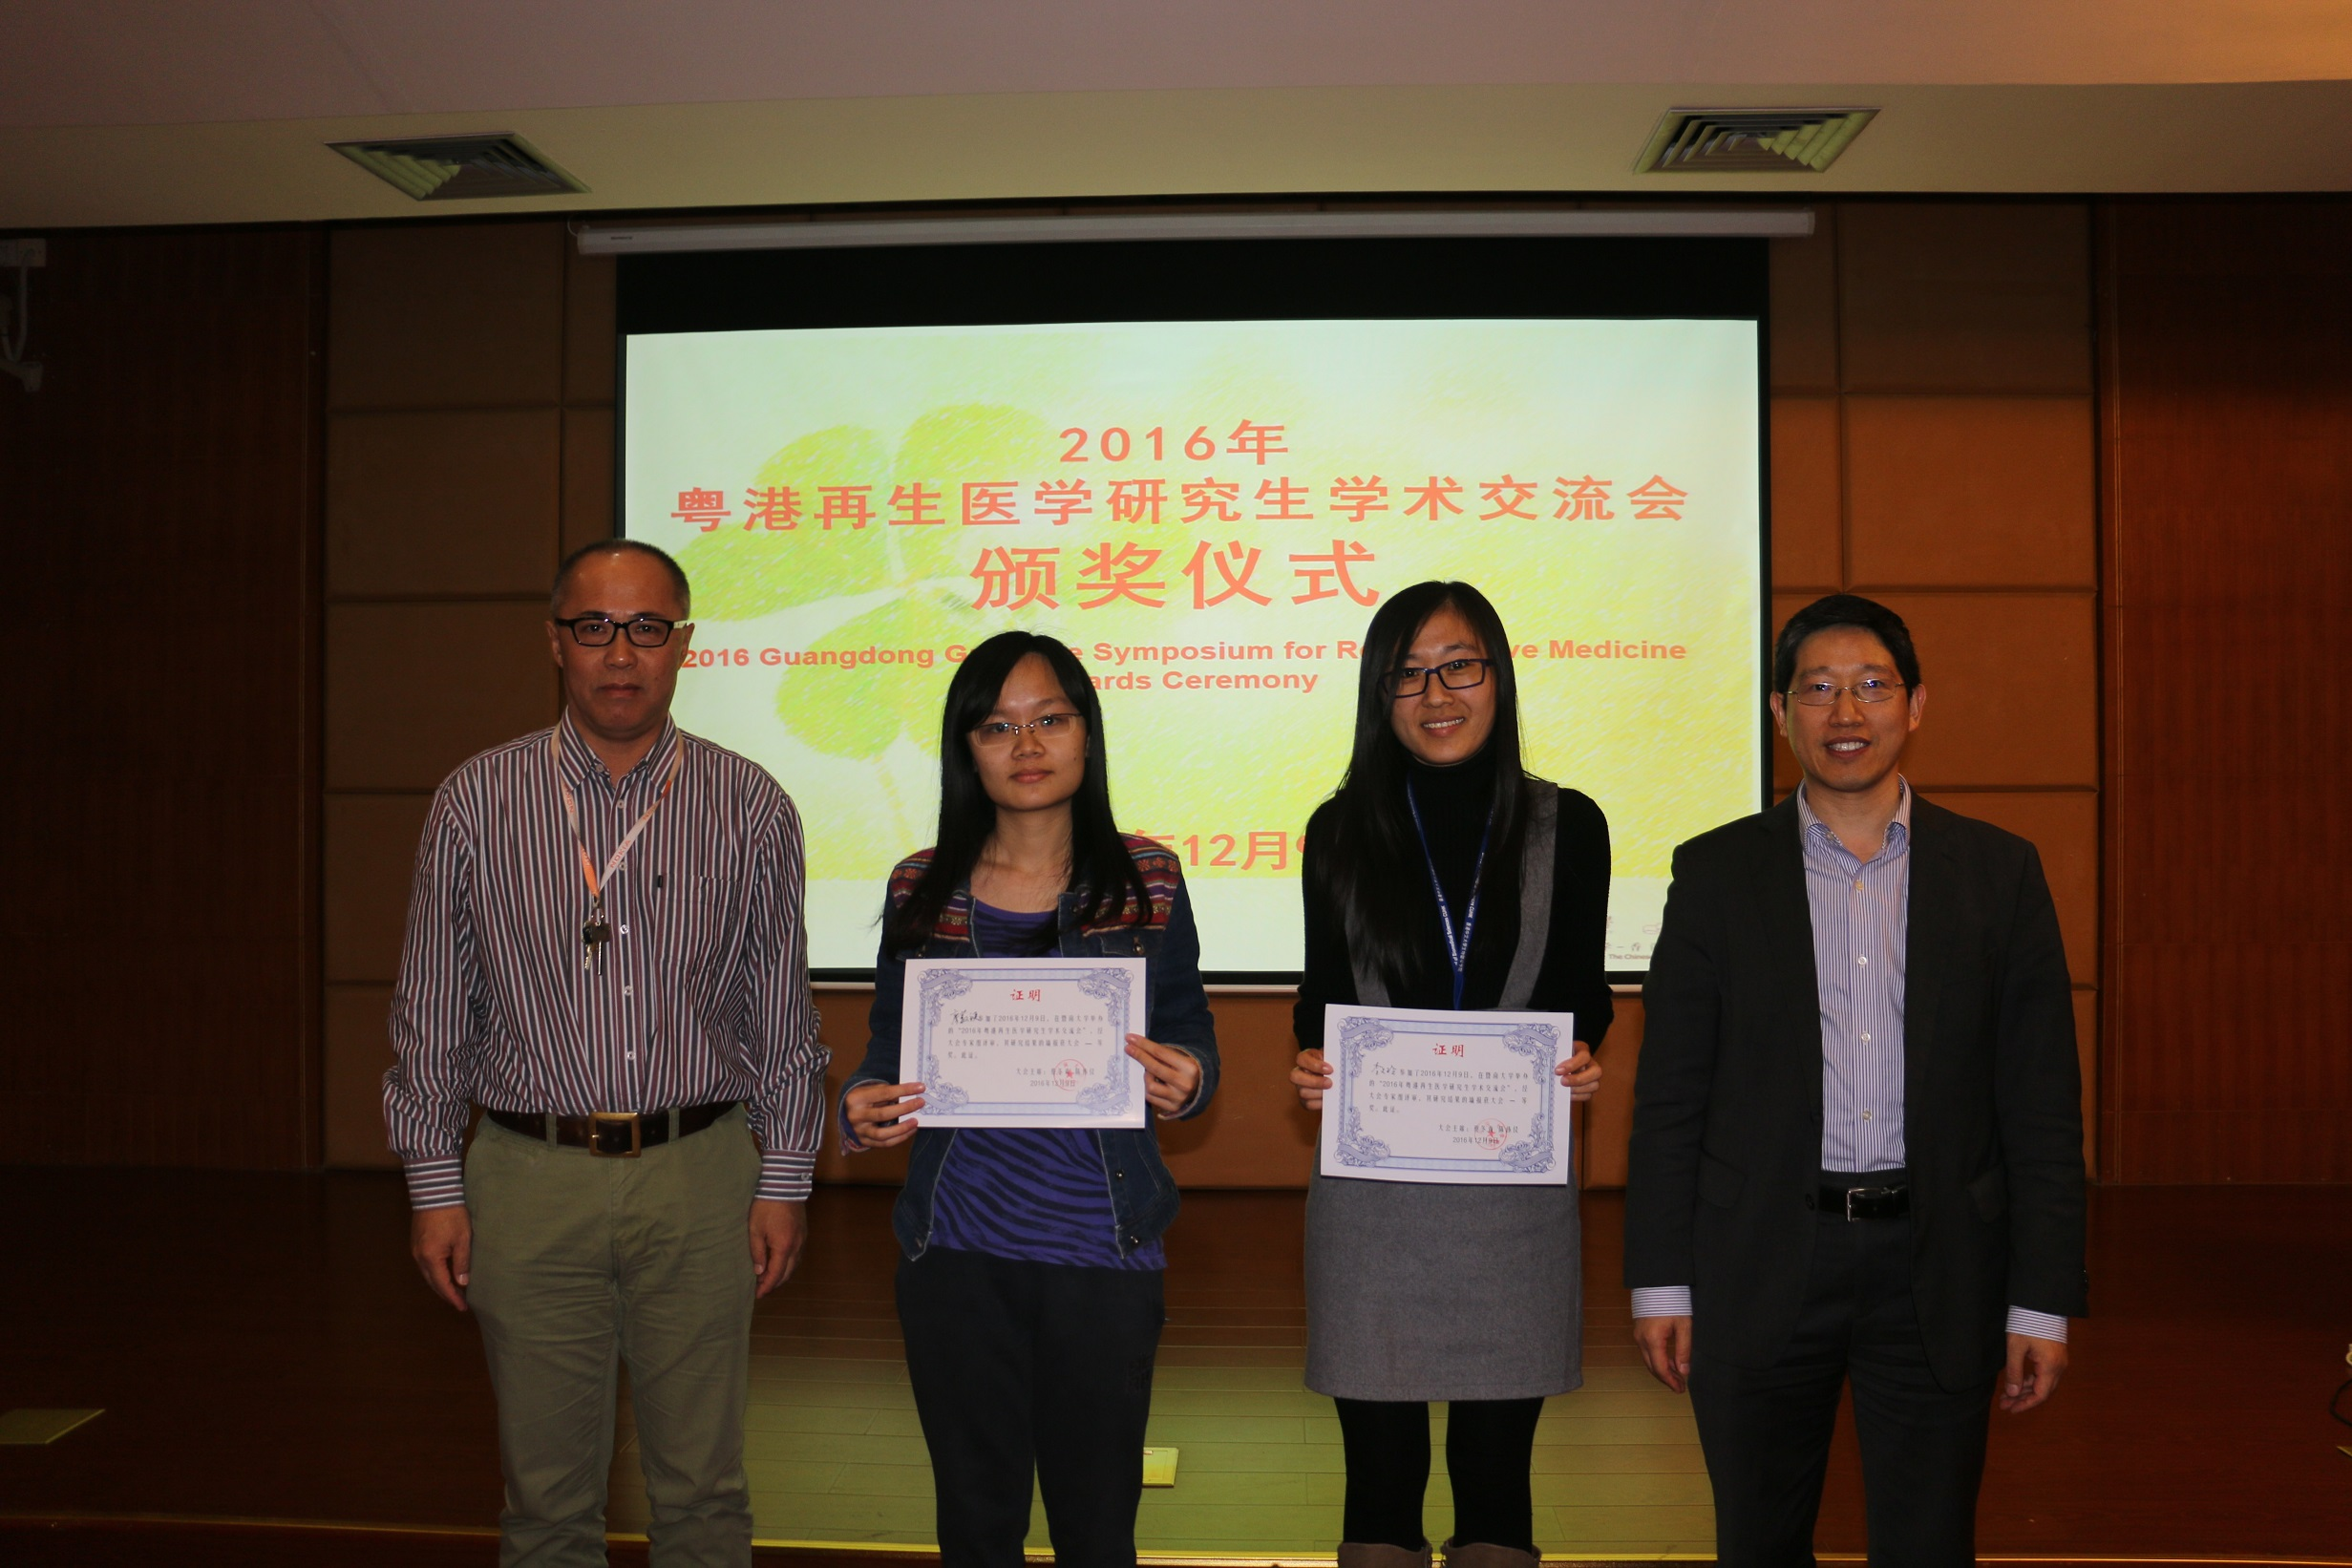 Group photo of First Prize awardees of Poster Presentation Competition and the prize presenters, including Prof. Wan Chao (1st from right) and Li Wenling (2nd from right)